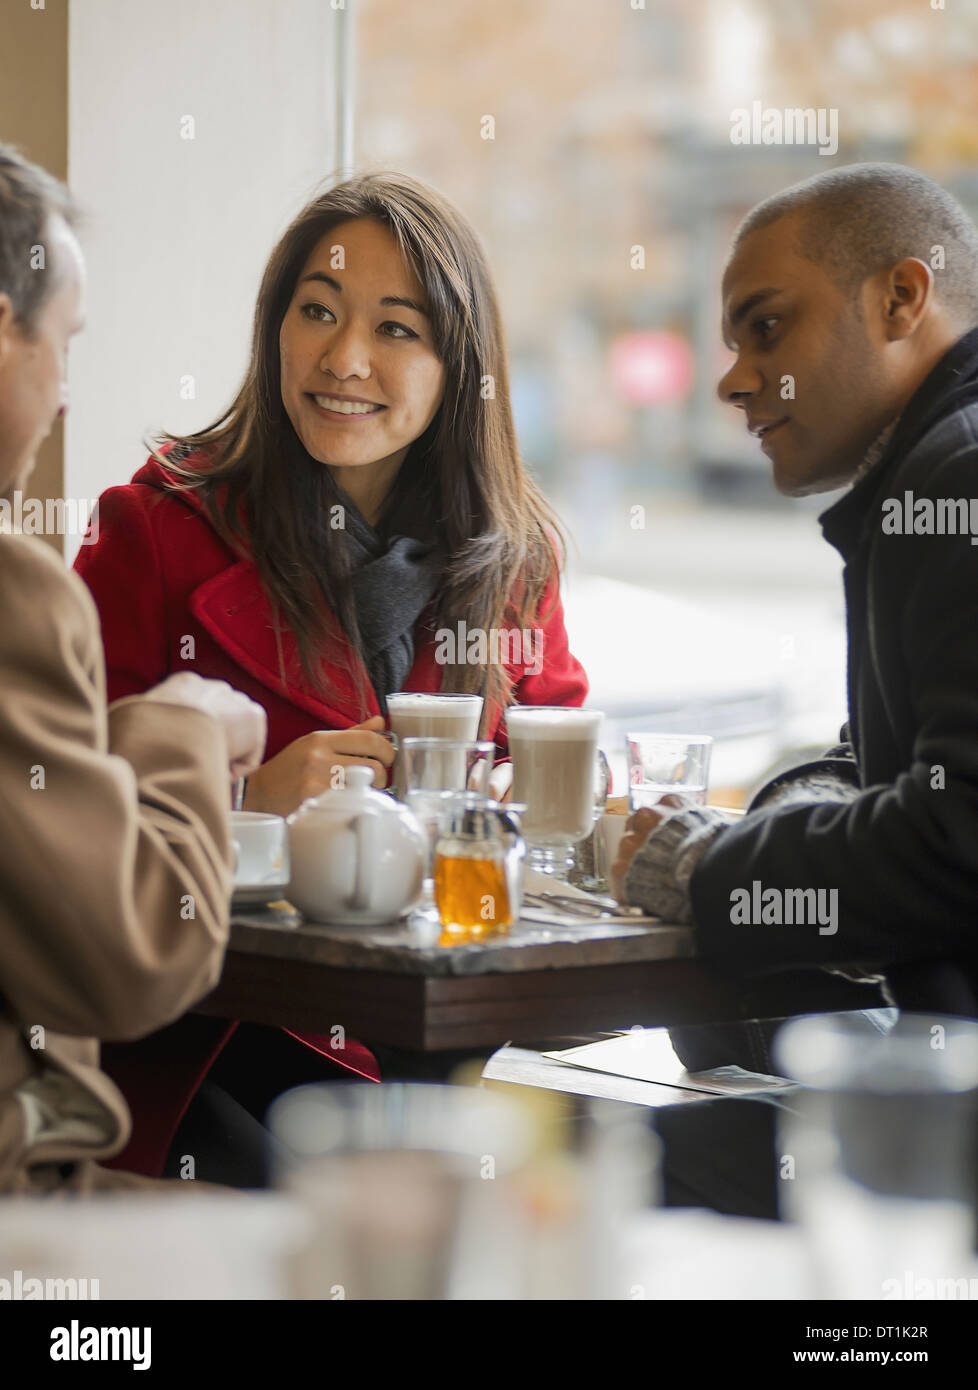 A group of people on the go Three people in a coffee shop sitting at a table and talking to each other Stock Photo